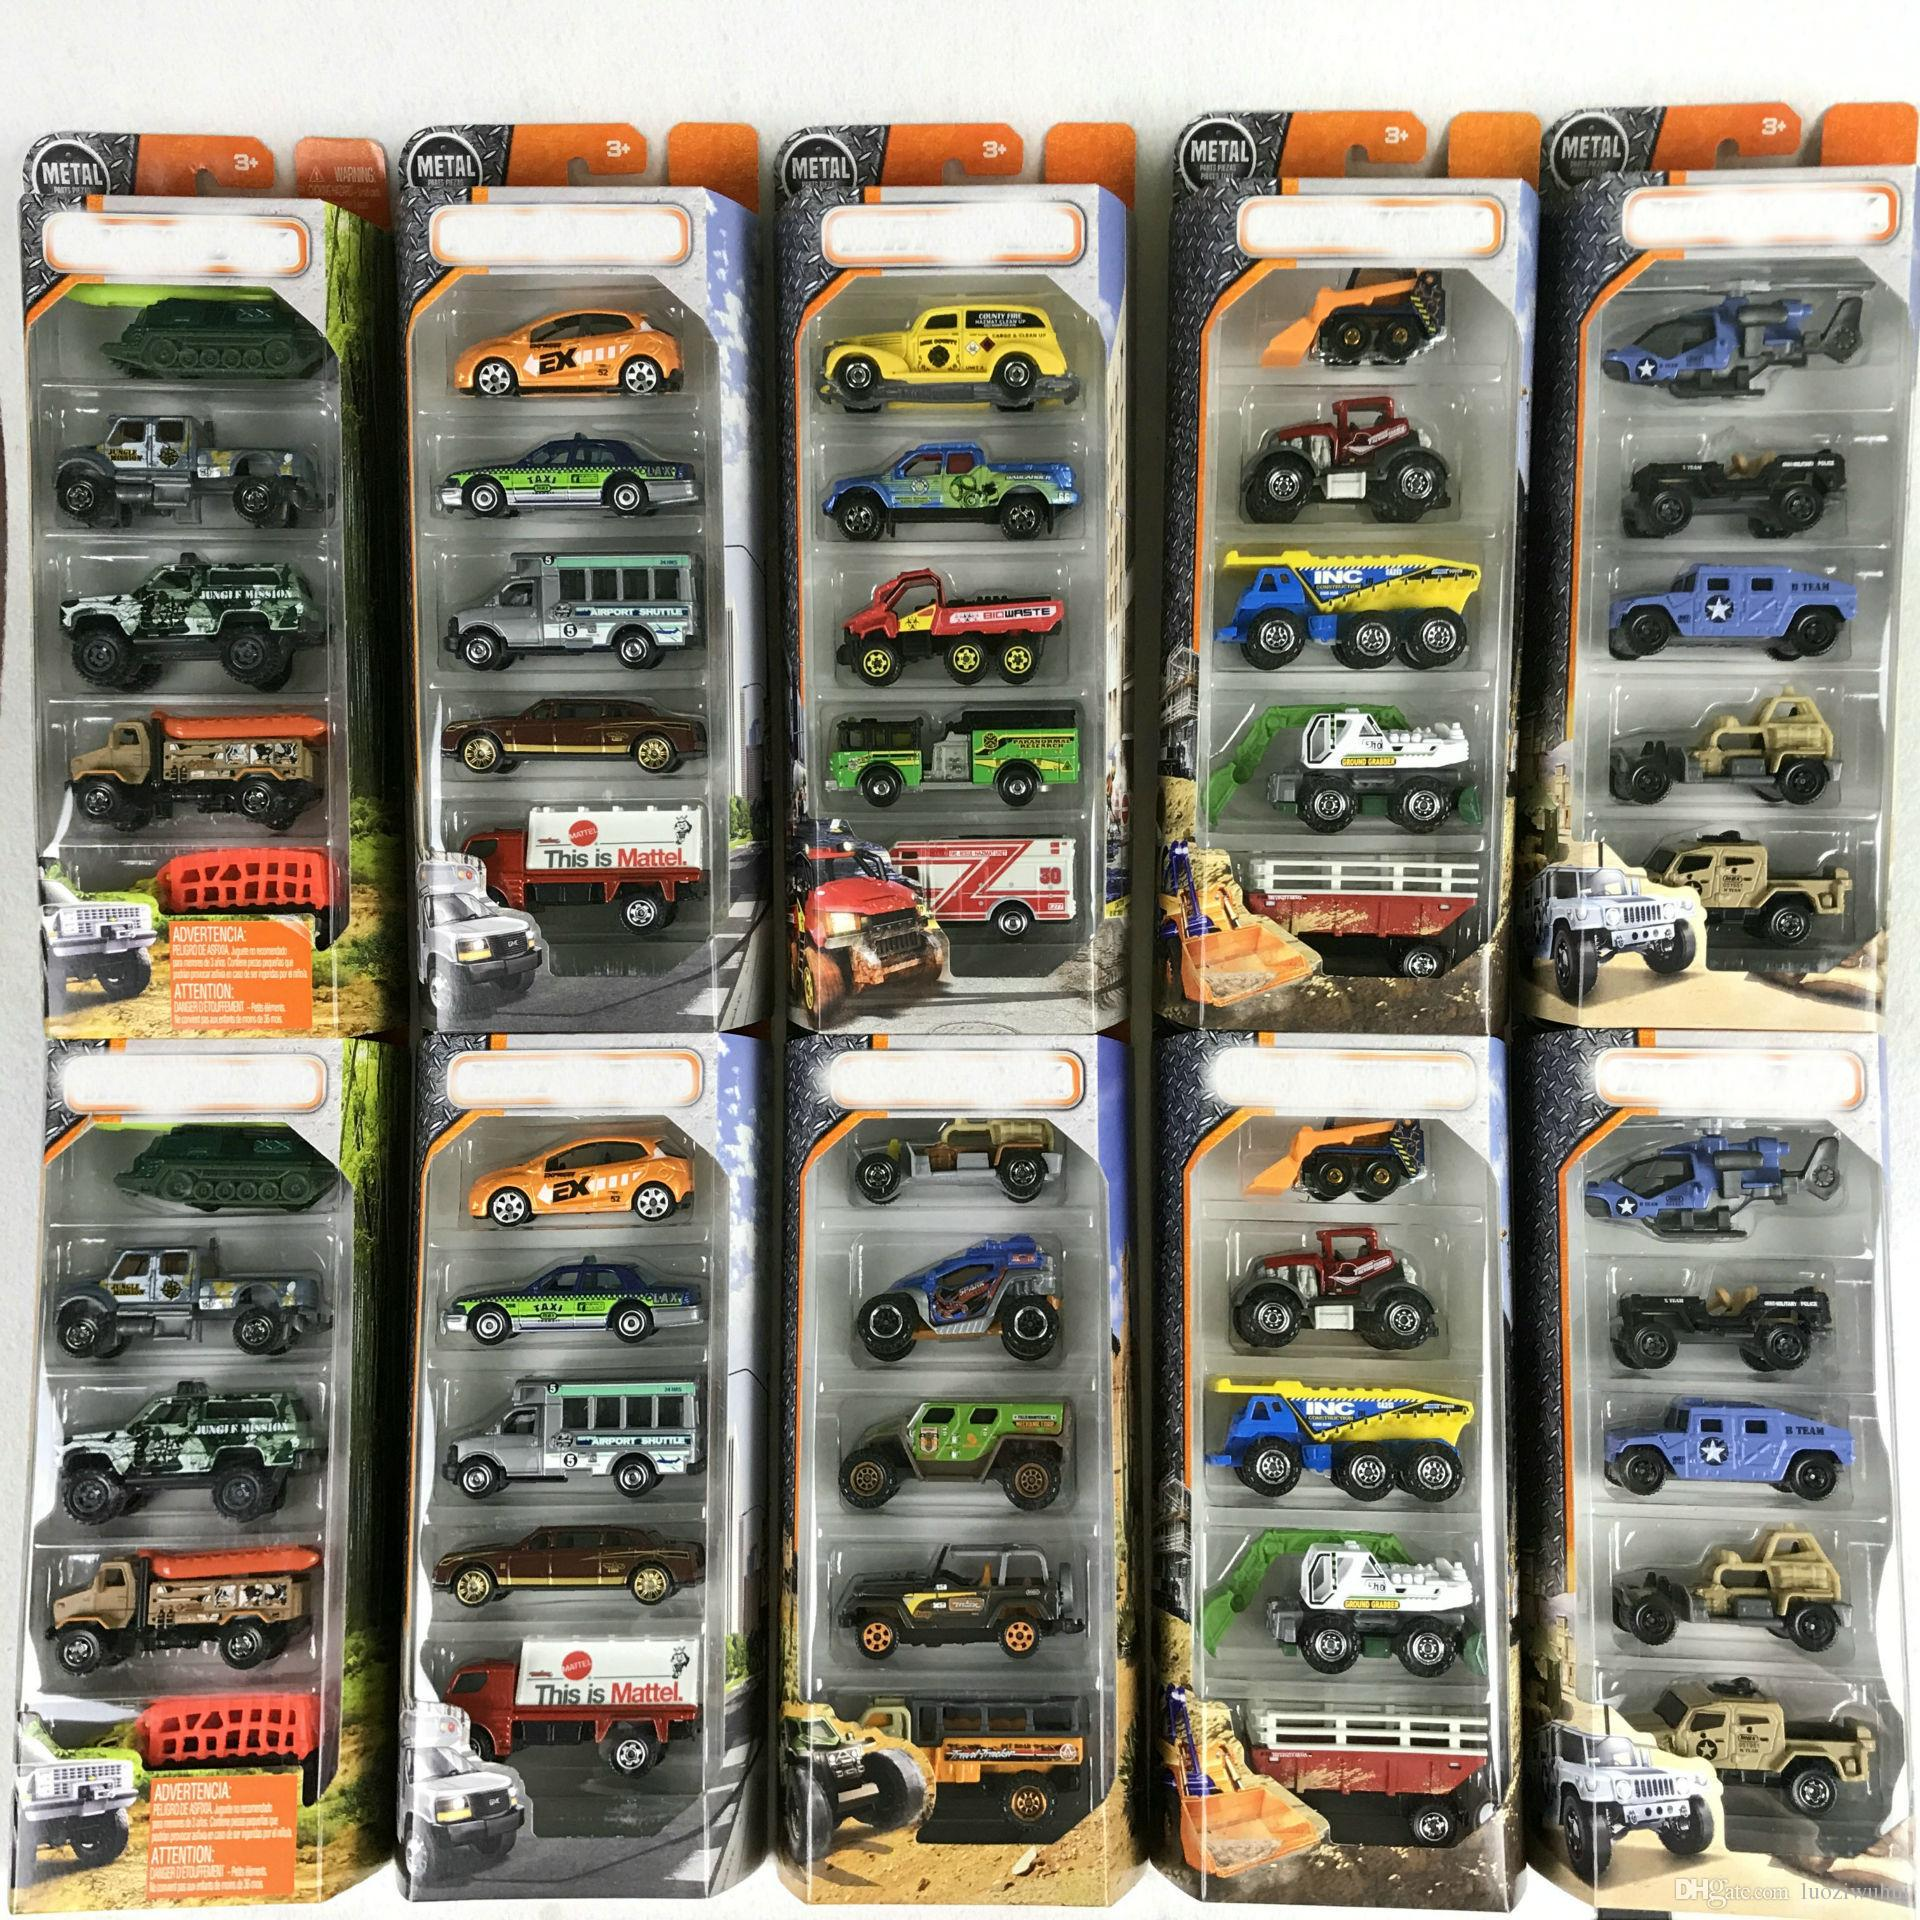 The latest batch of toy cars in the matchbox, 5 city hero engineering vehicles, alloy vehicle models, pocket toys series. C1817